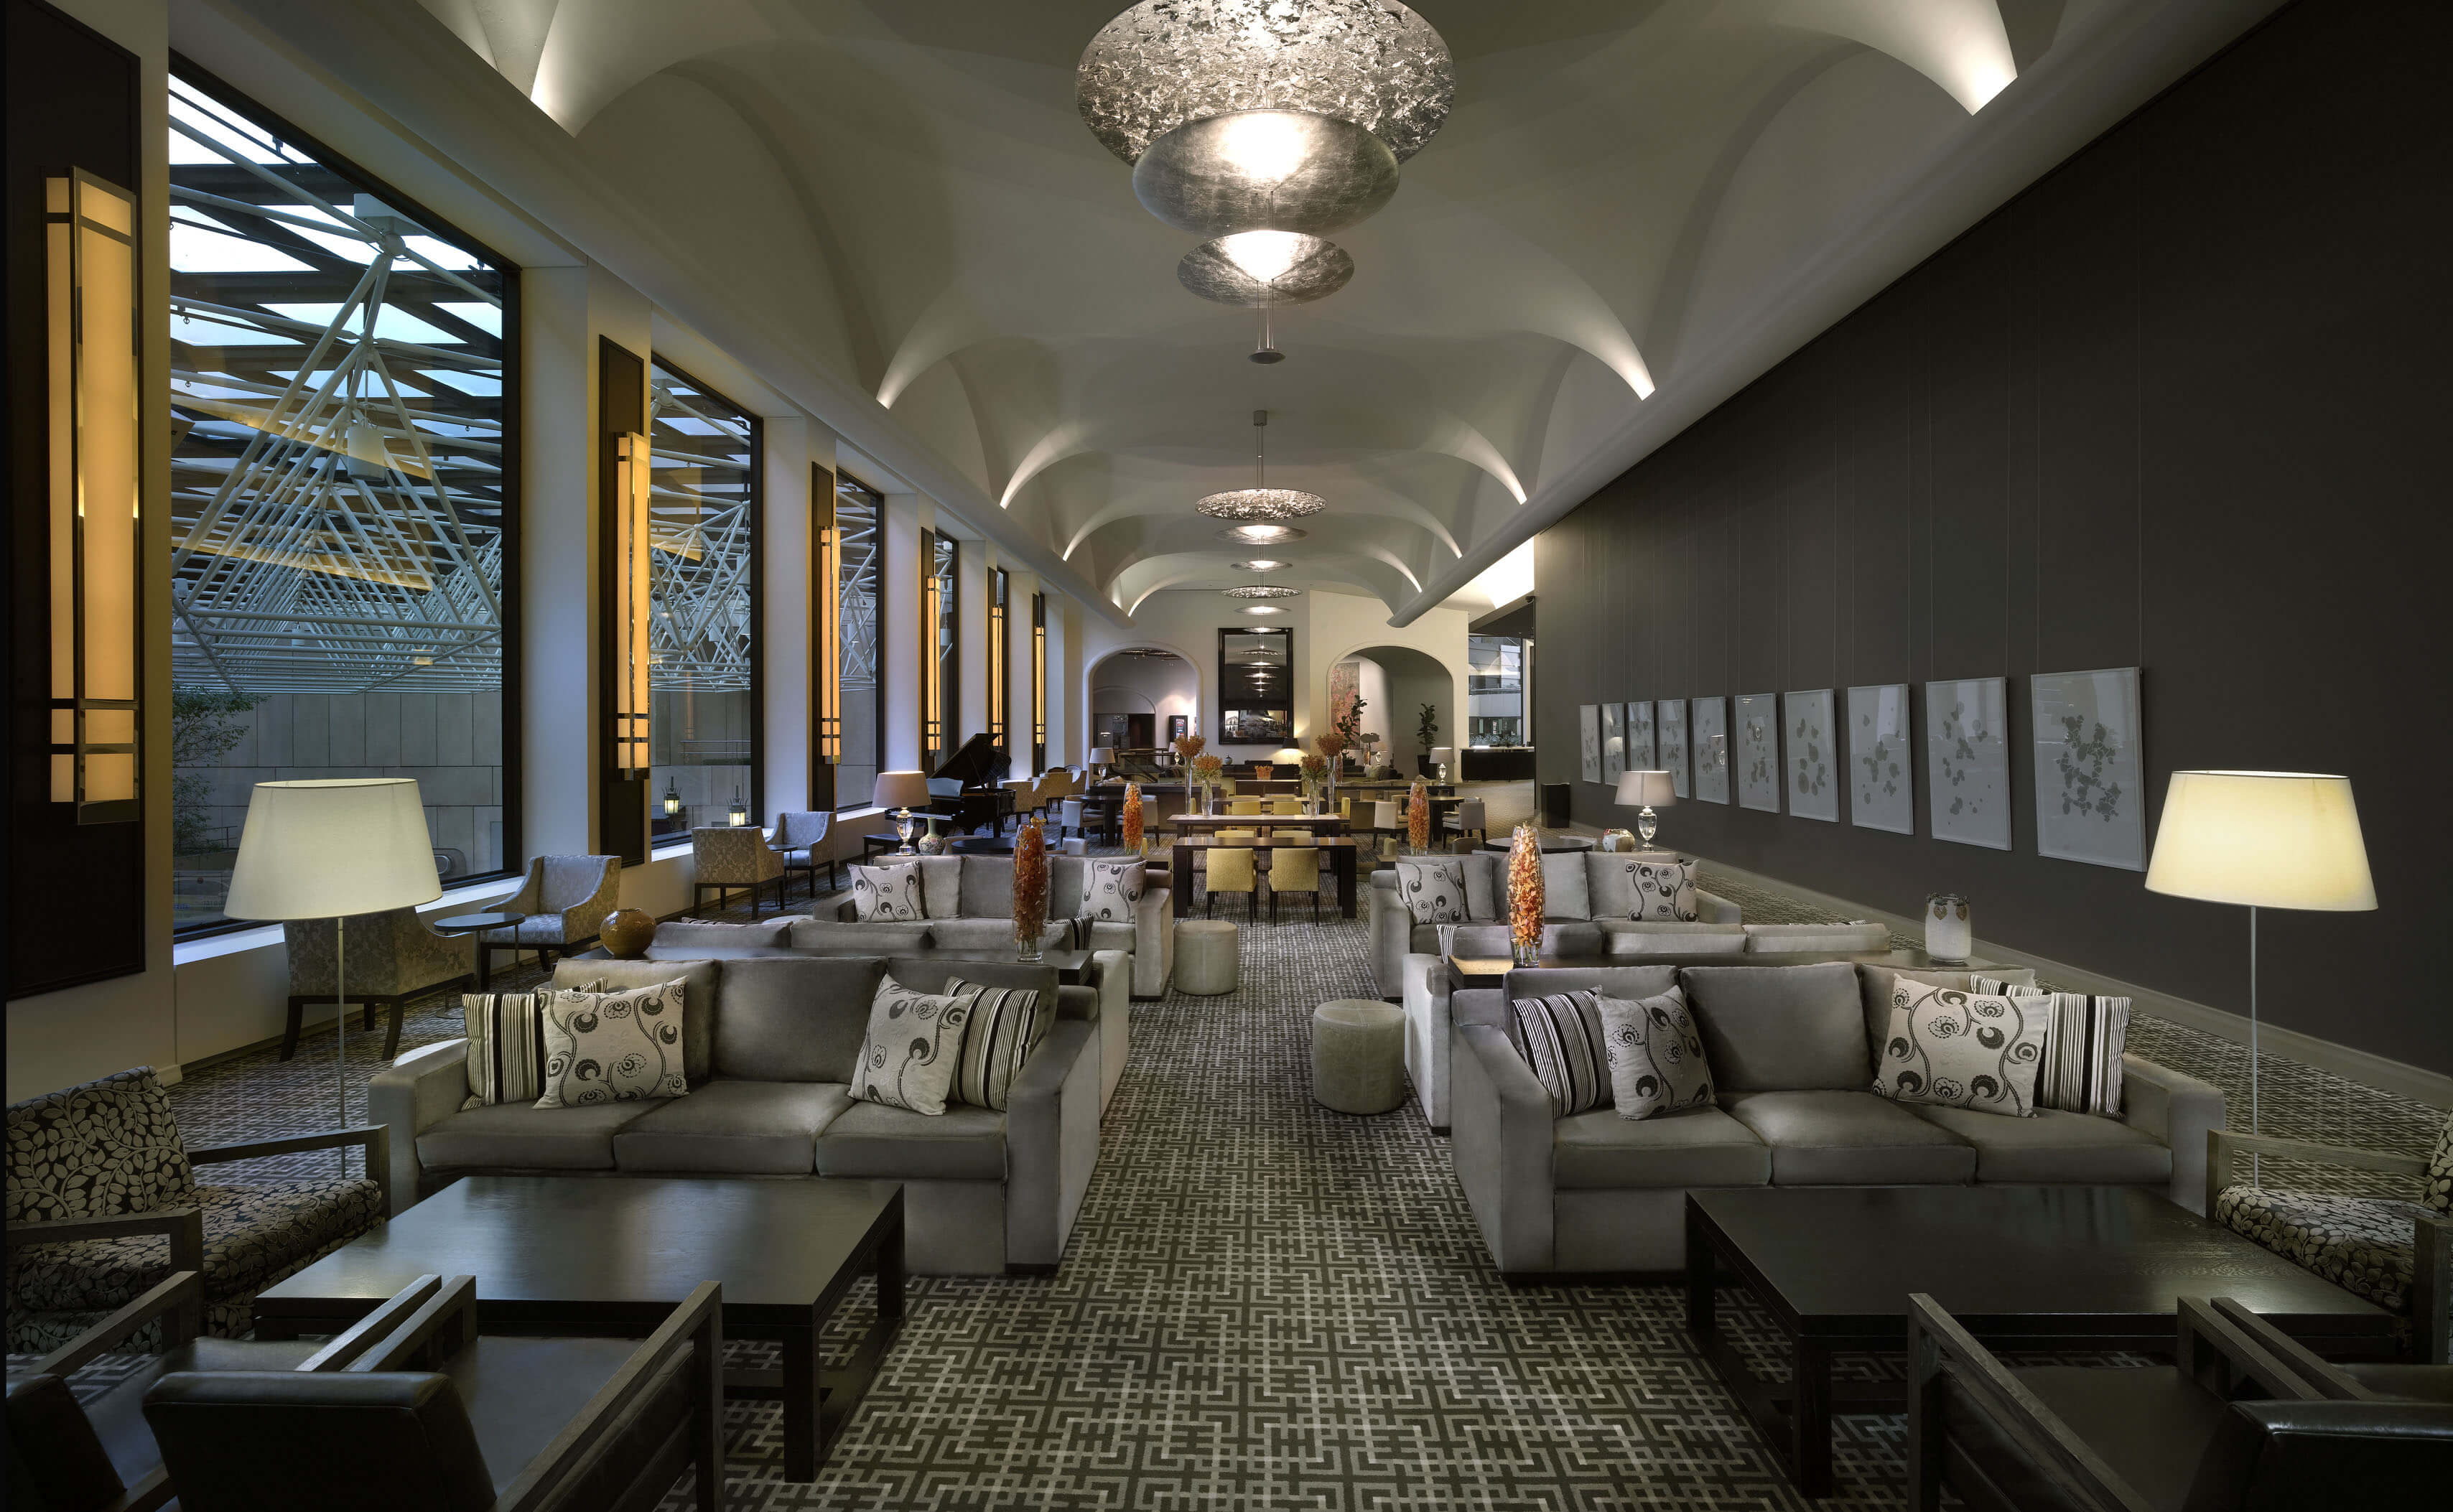 Sofitel on Collins cafe with gray decor and sofa